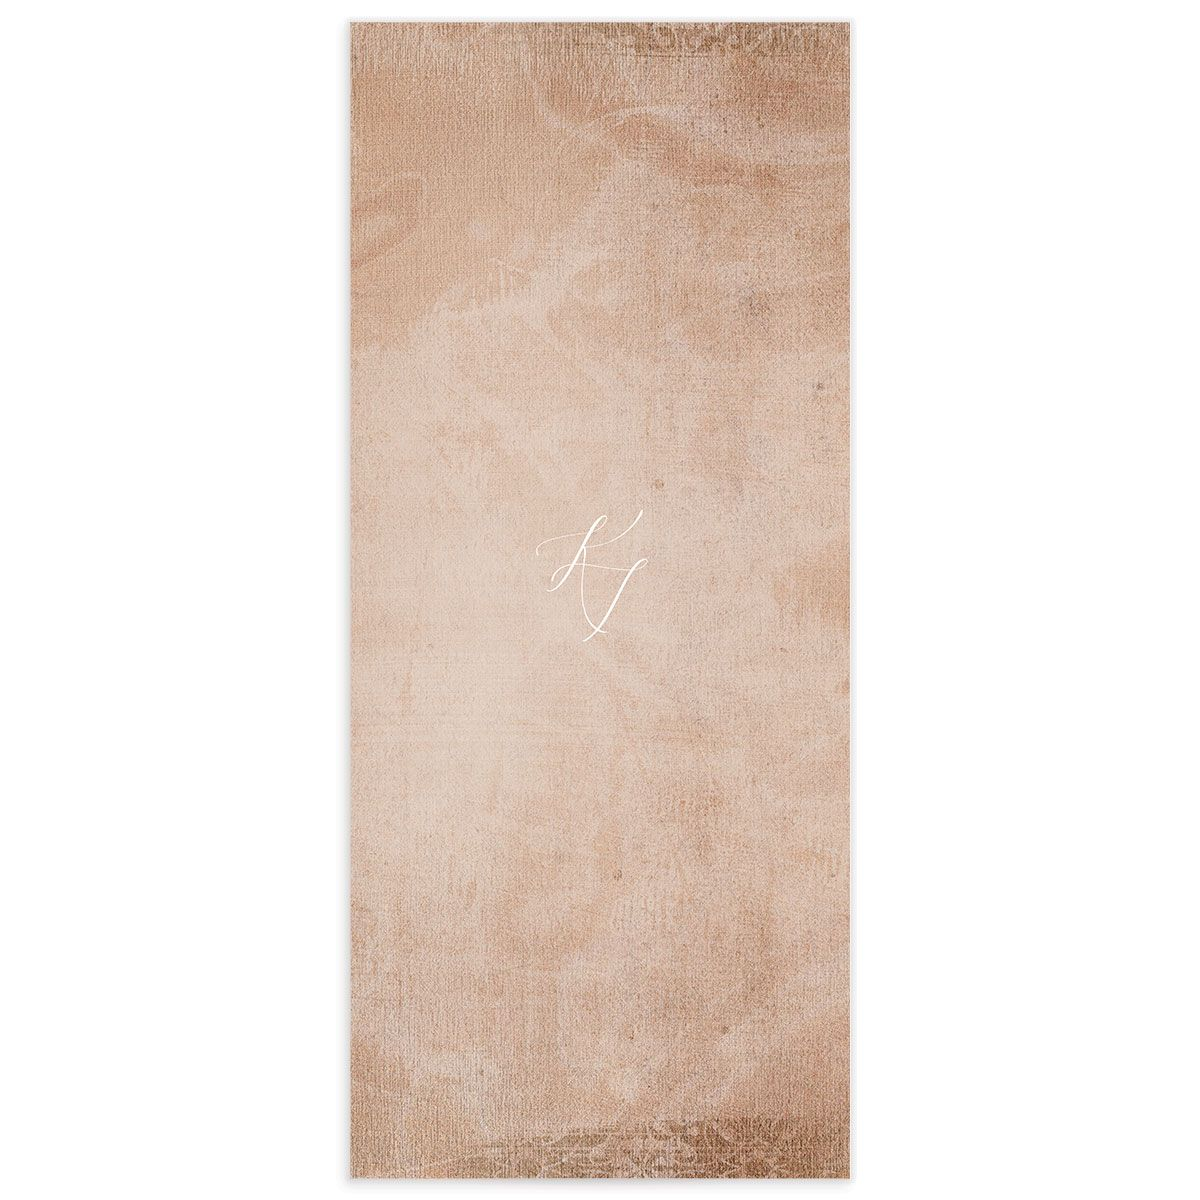 Muted Floral Wedding Menu Card back copper